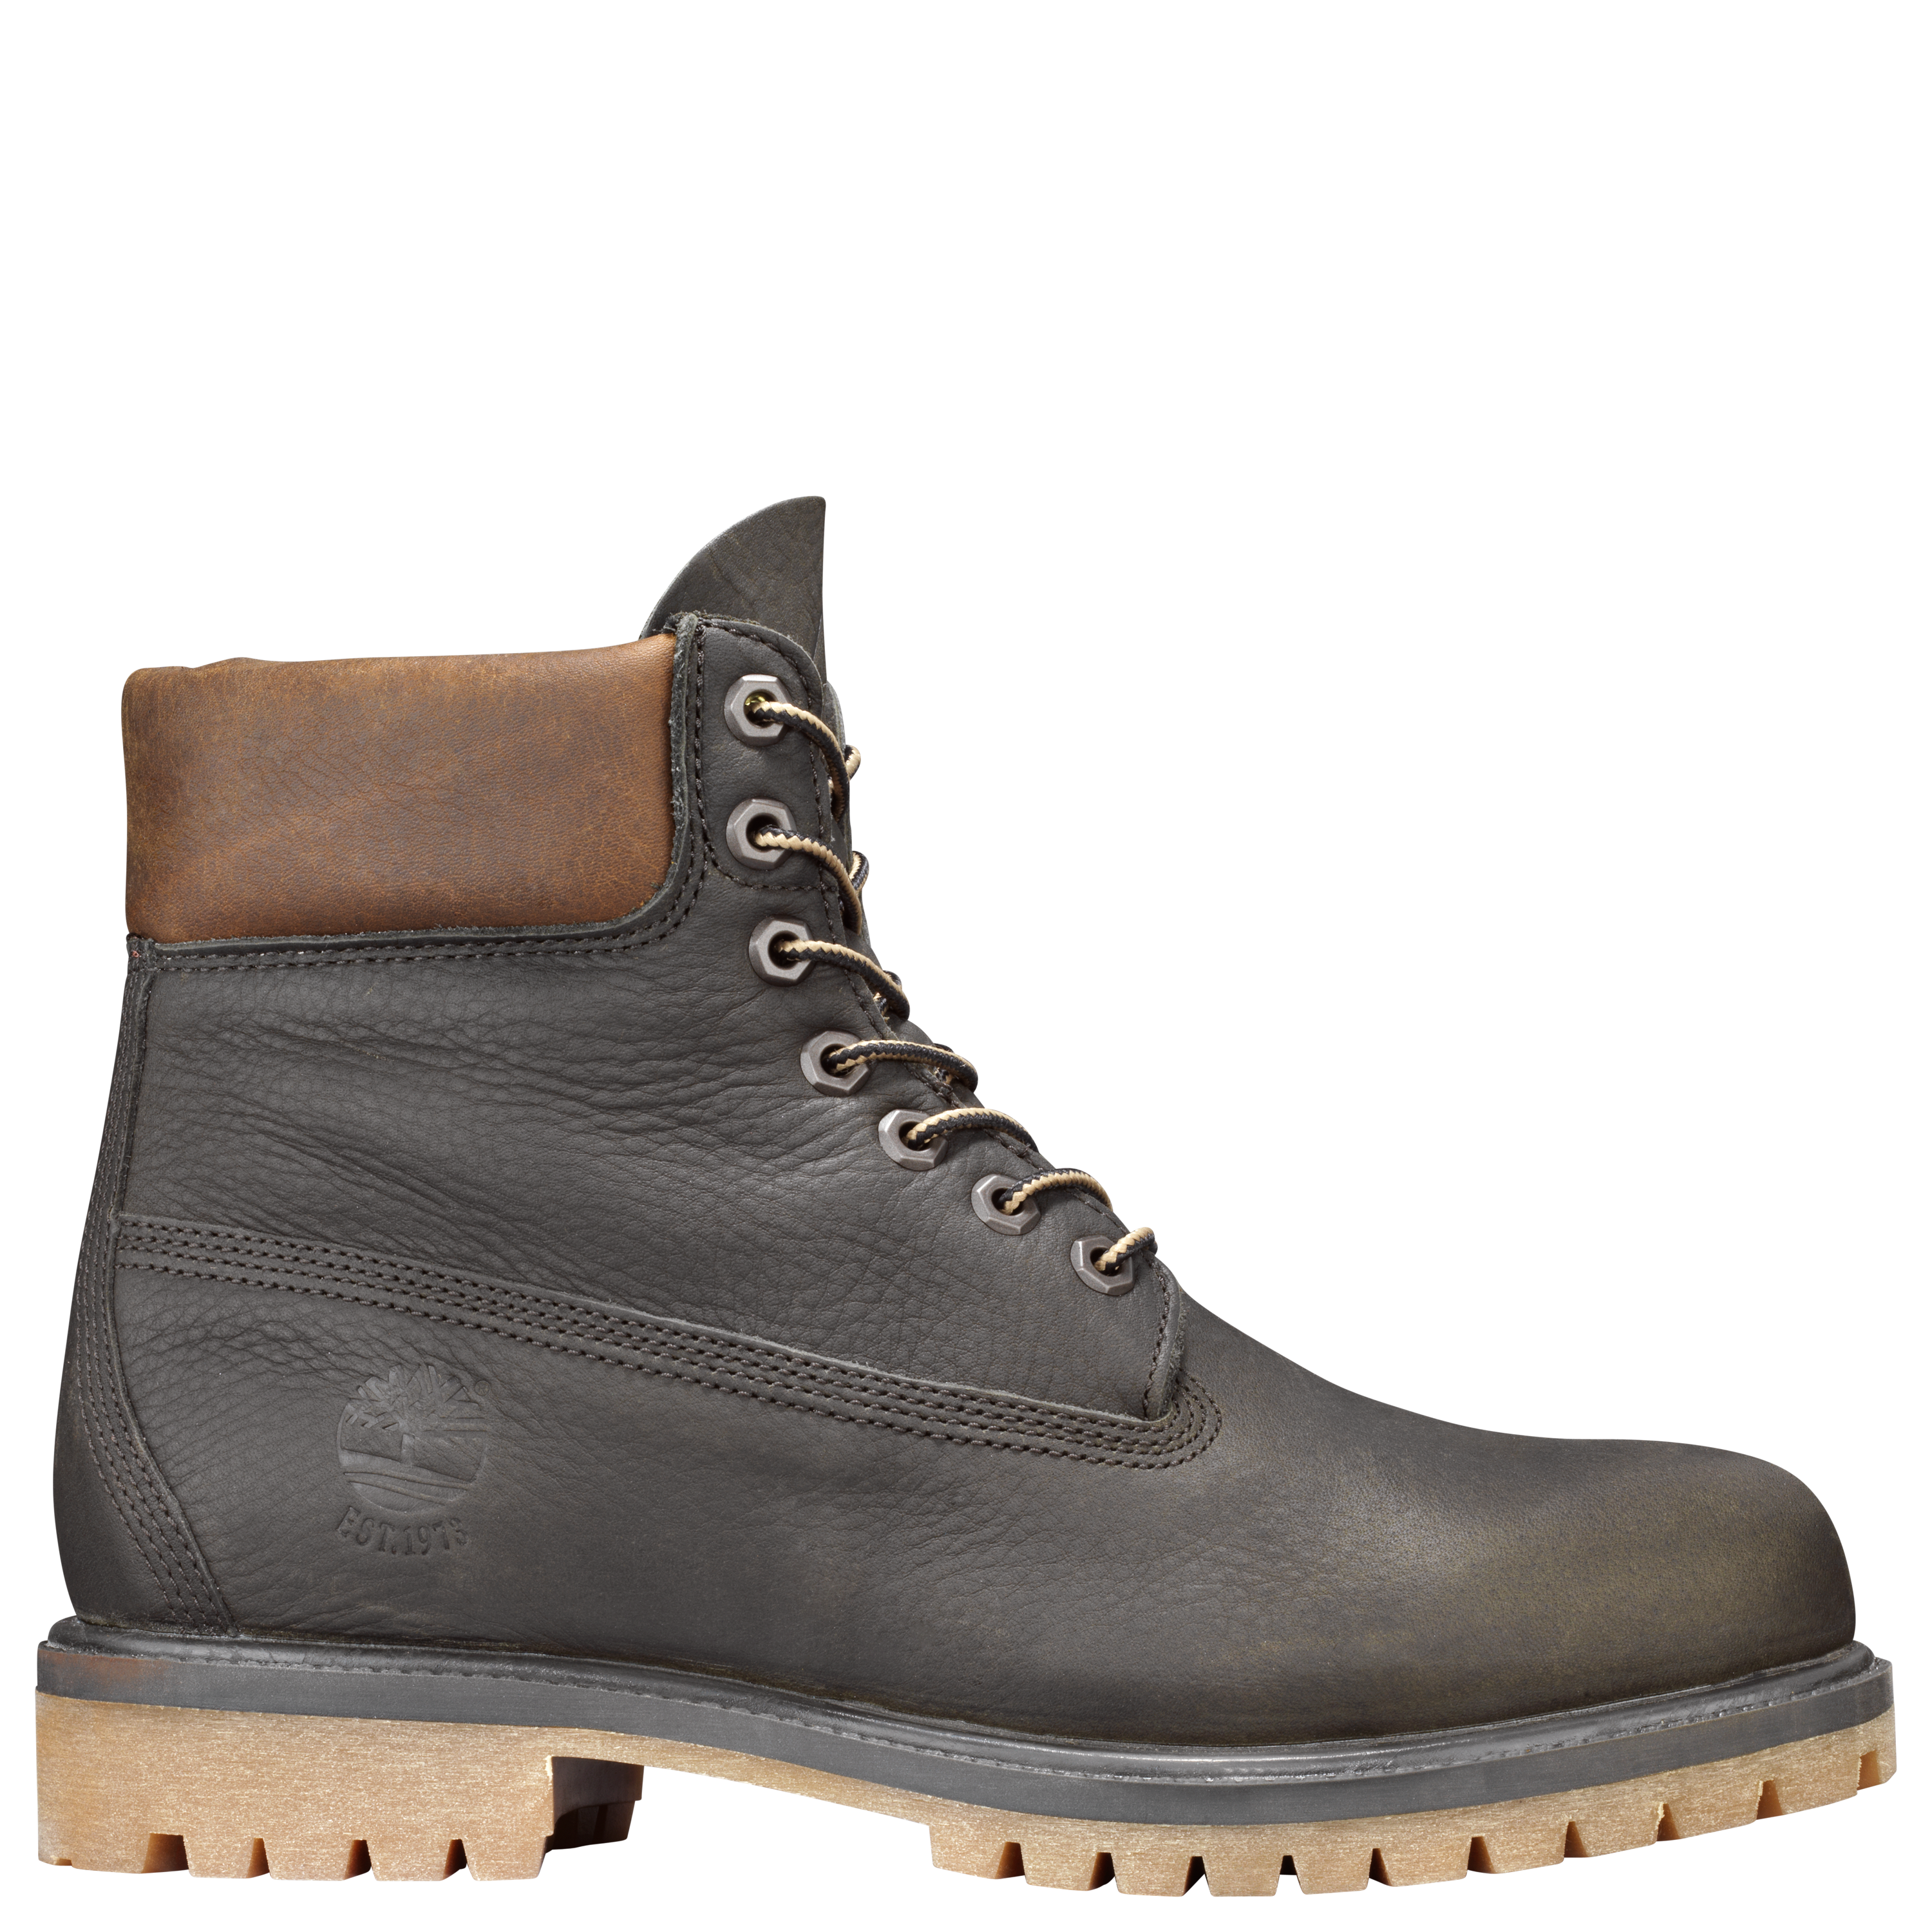 2fb0d9fa44e9 AFO RADIO - 45 YEARS OF CELEBRATING HISTORY WITH TIMBERLAND